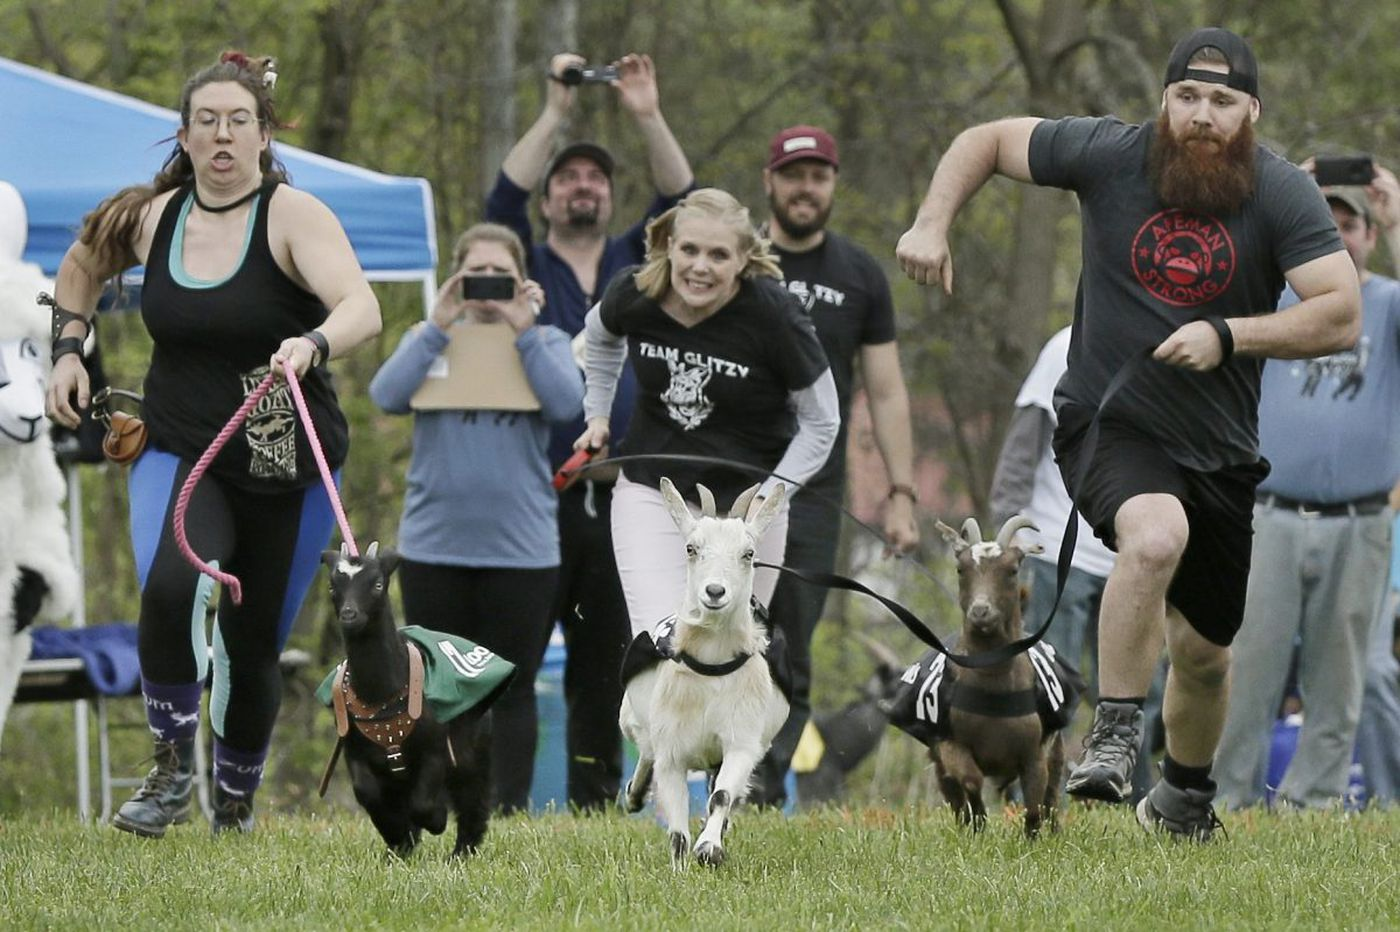 The cutthroat goat races of Sly Fox Brewery's annual Bock Fest